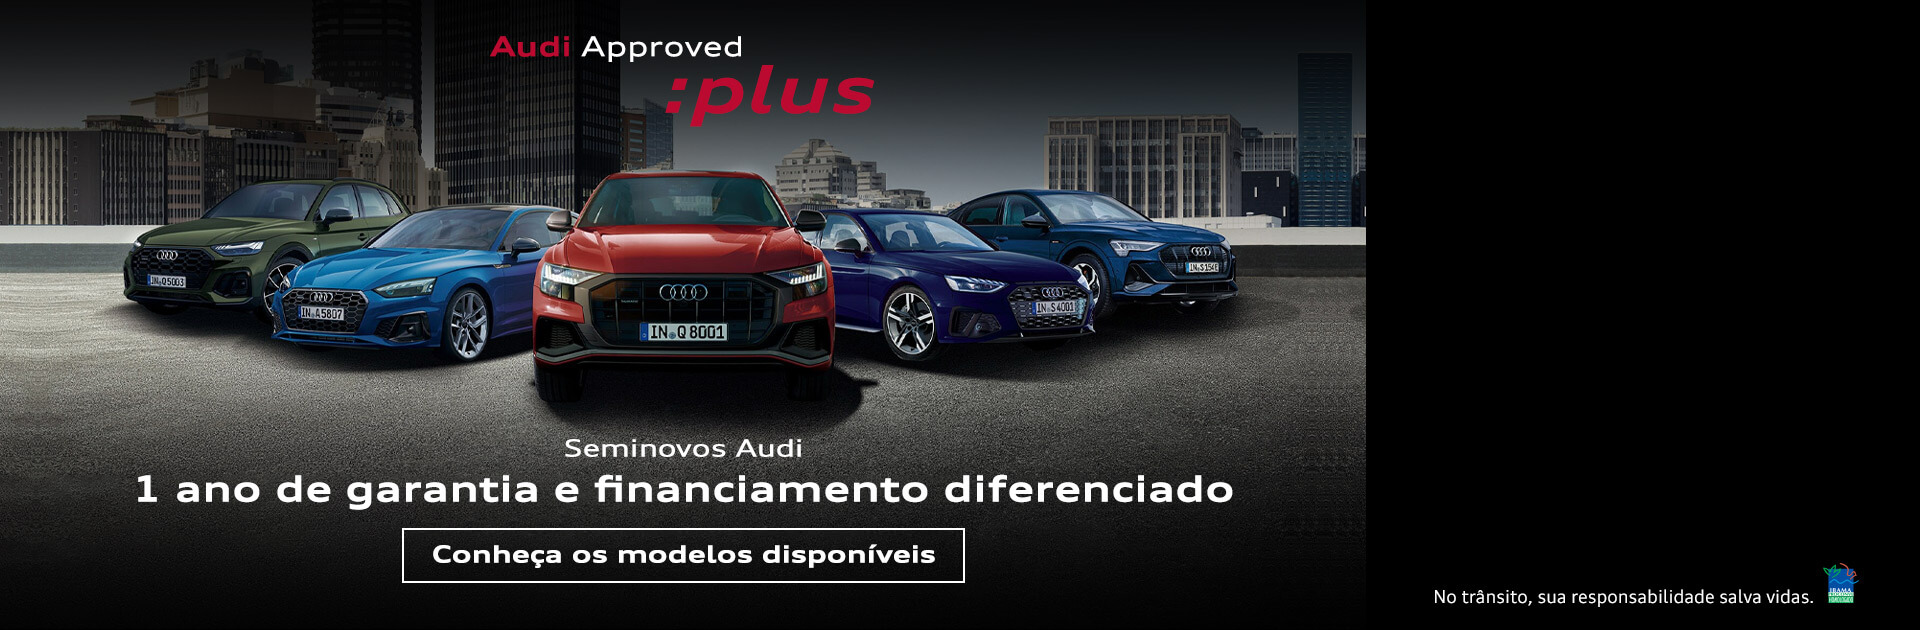 approved plus - ago/21